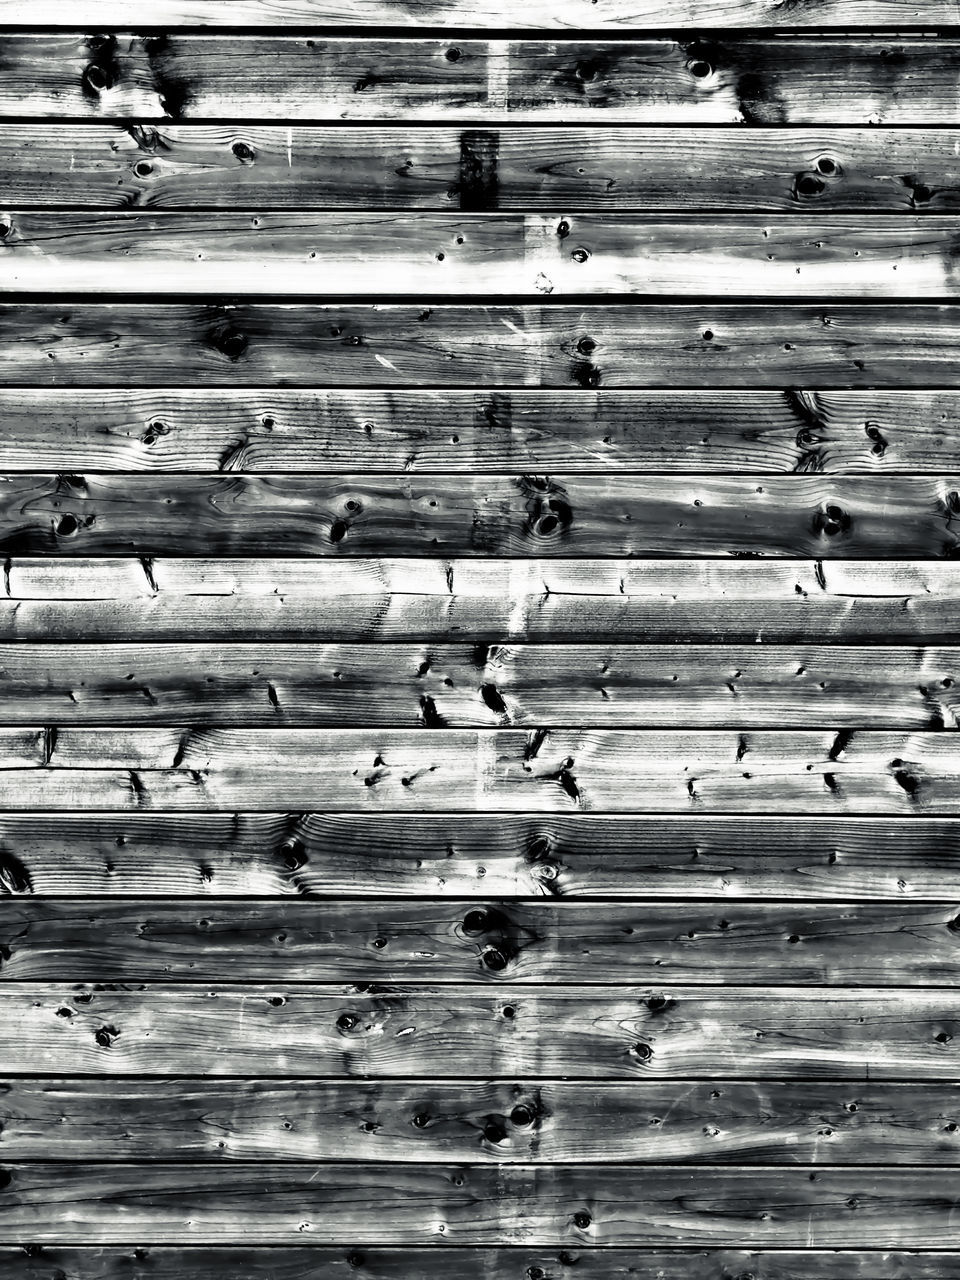 pattern, backgrounds, textured, full frame, wood - material, hardwood floor, material, rough, no people, close-up, indoors, wood grain, hardwood, architecture, day